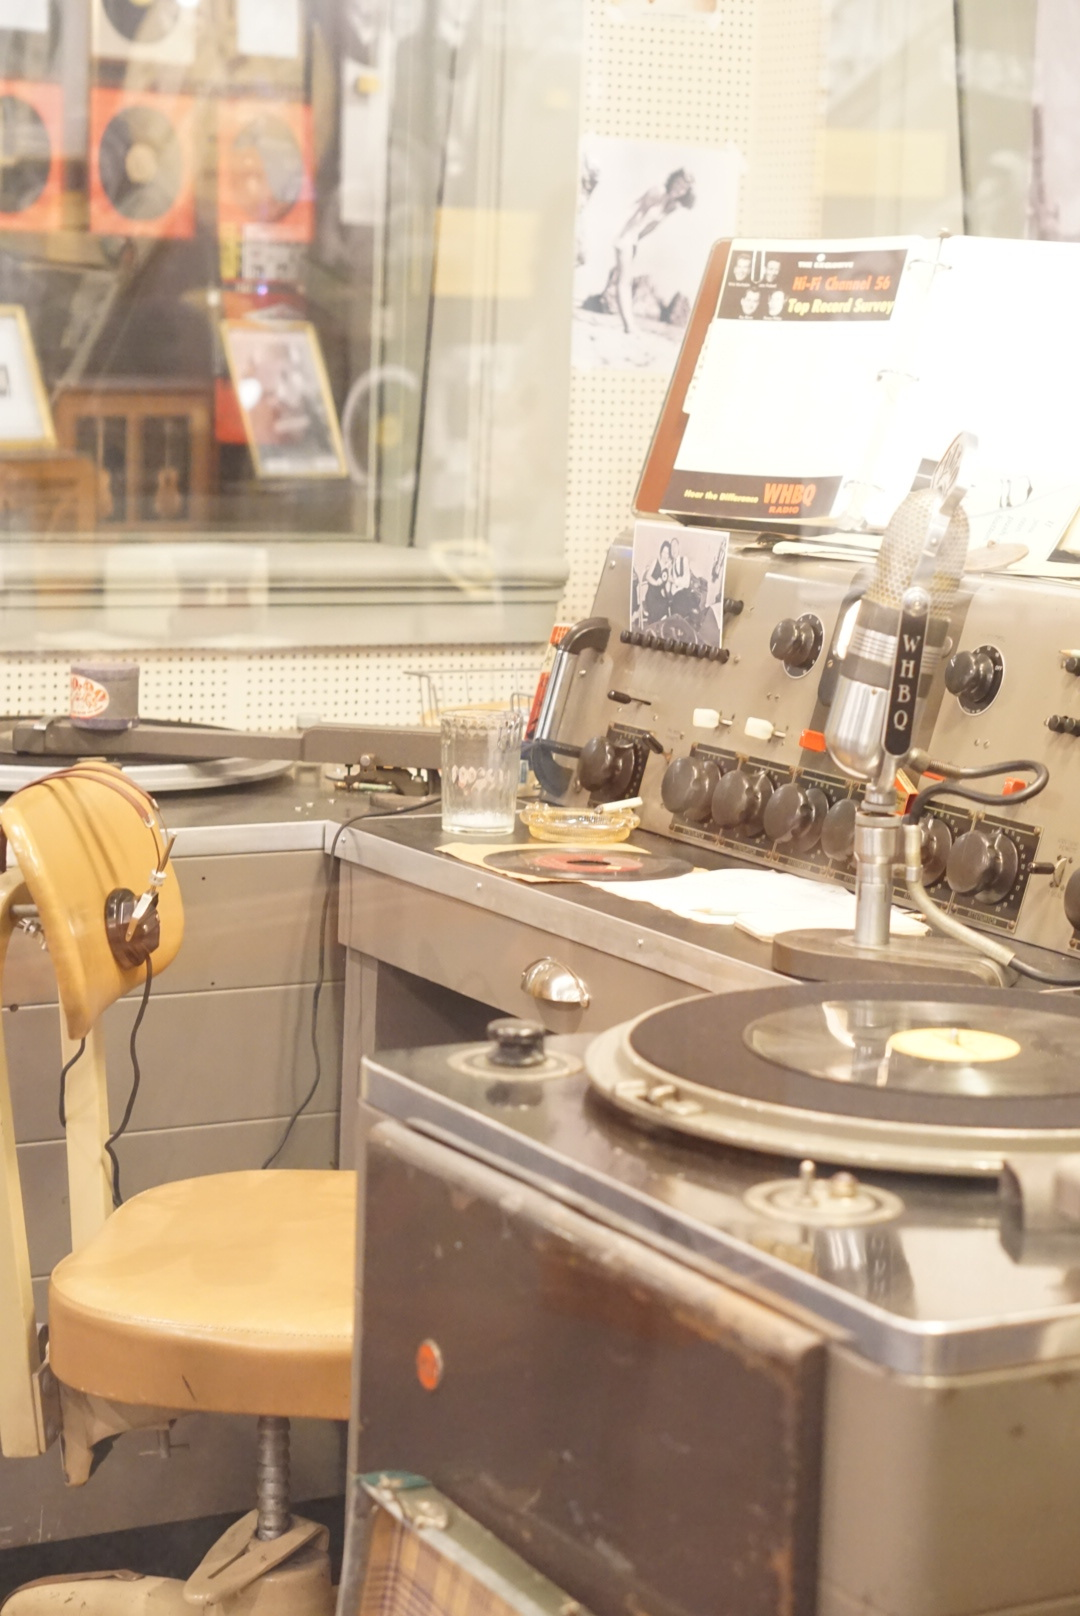 """This is the original broadcast booth where """"Daddy-O"""" Dewey Phillips hosted his groundbreaking radio show from 1953-1959. This is also where he played Elvis' """"That's Alright"""" for the very first time."""